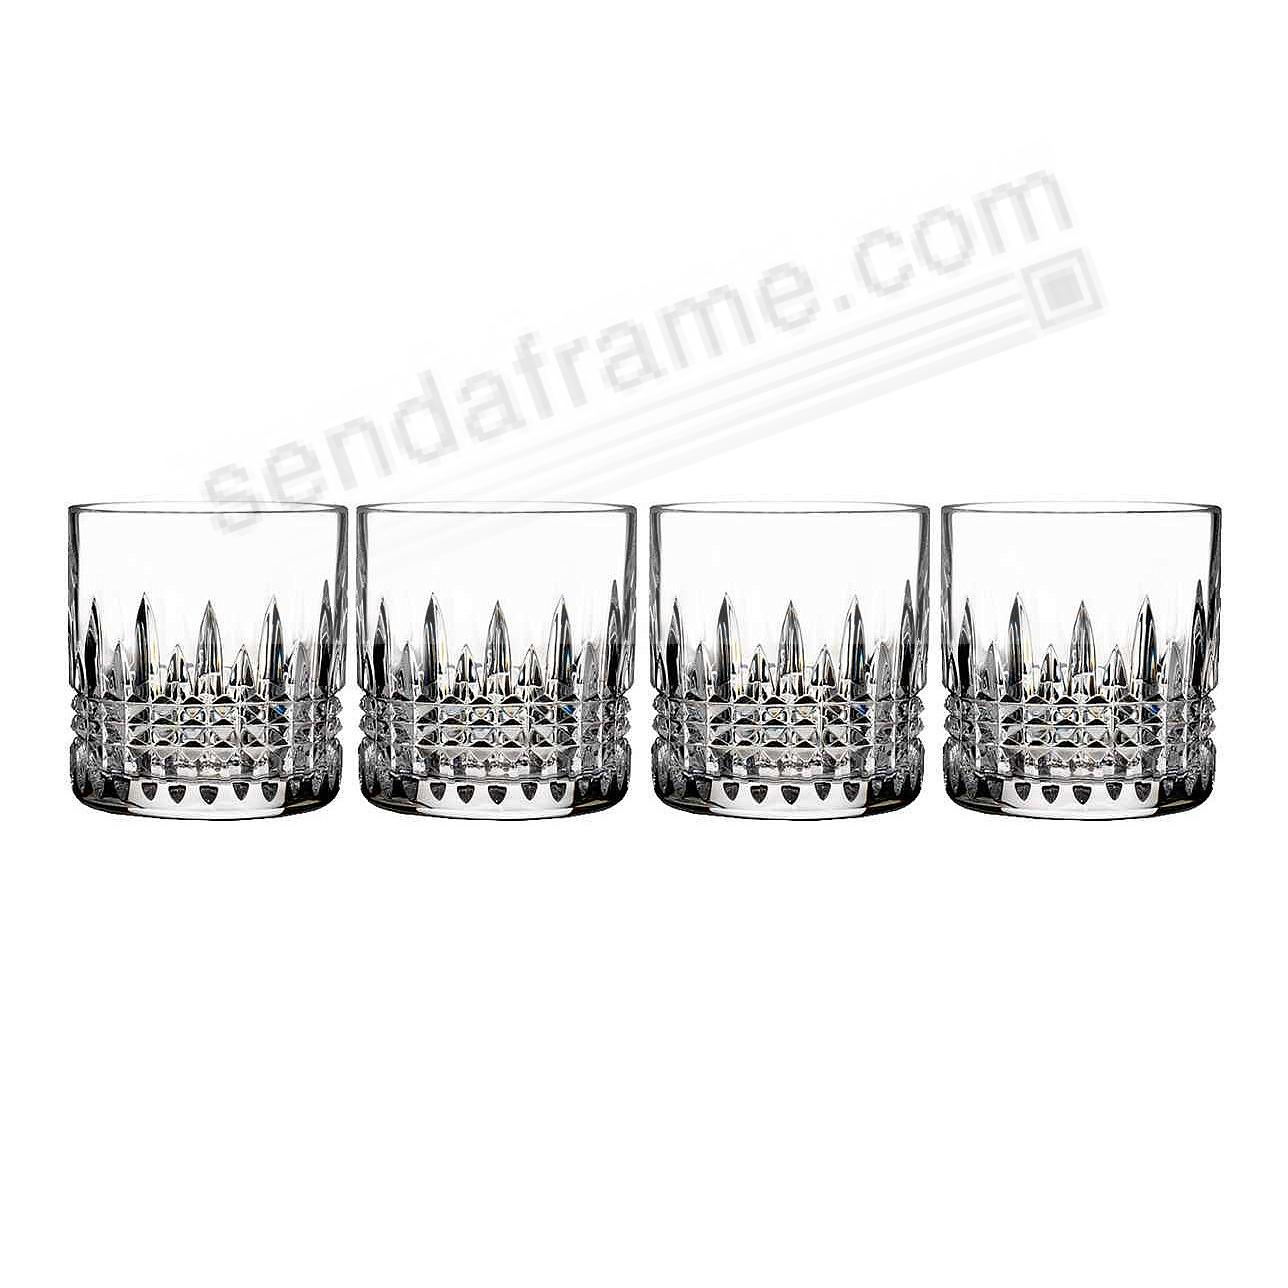 The Original LISMORE DIAMOND Straight-Sided Whiskey Tumblers 7oz by Waterford®